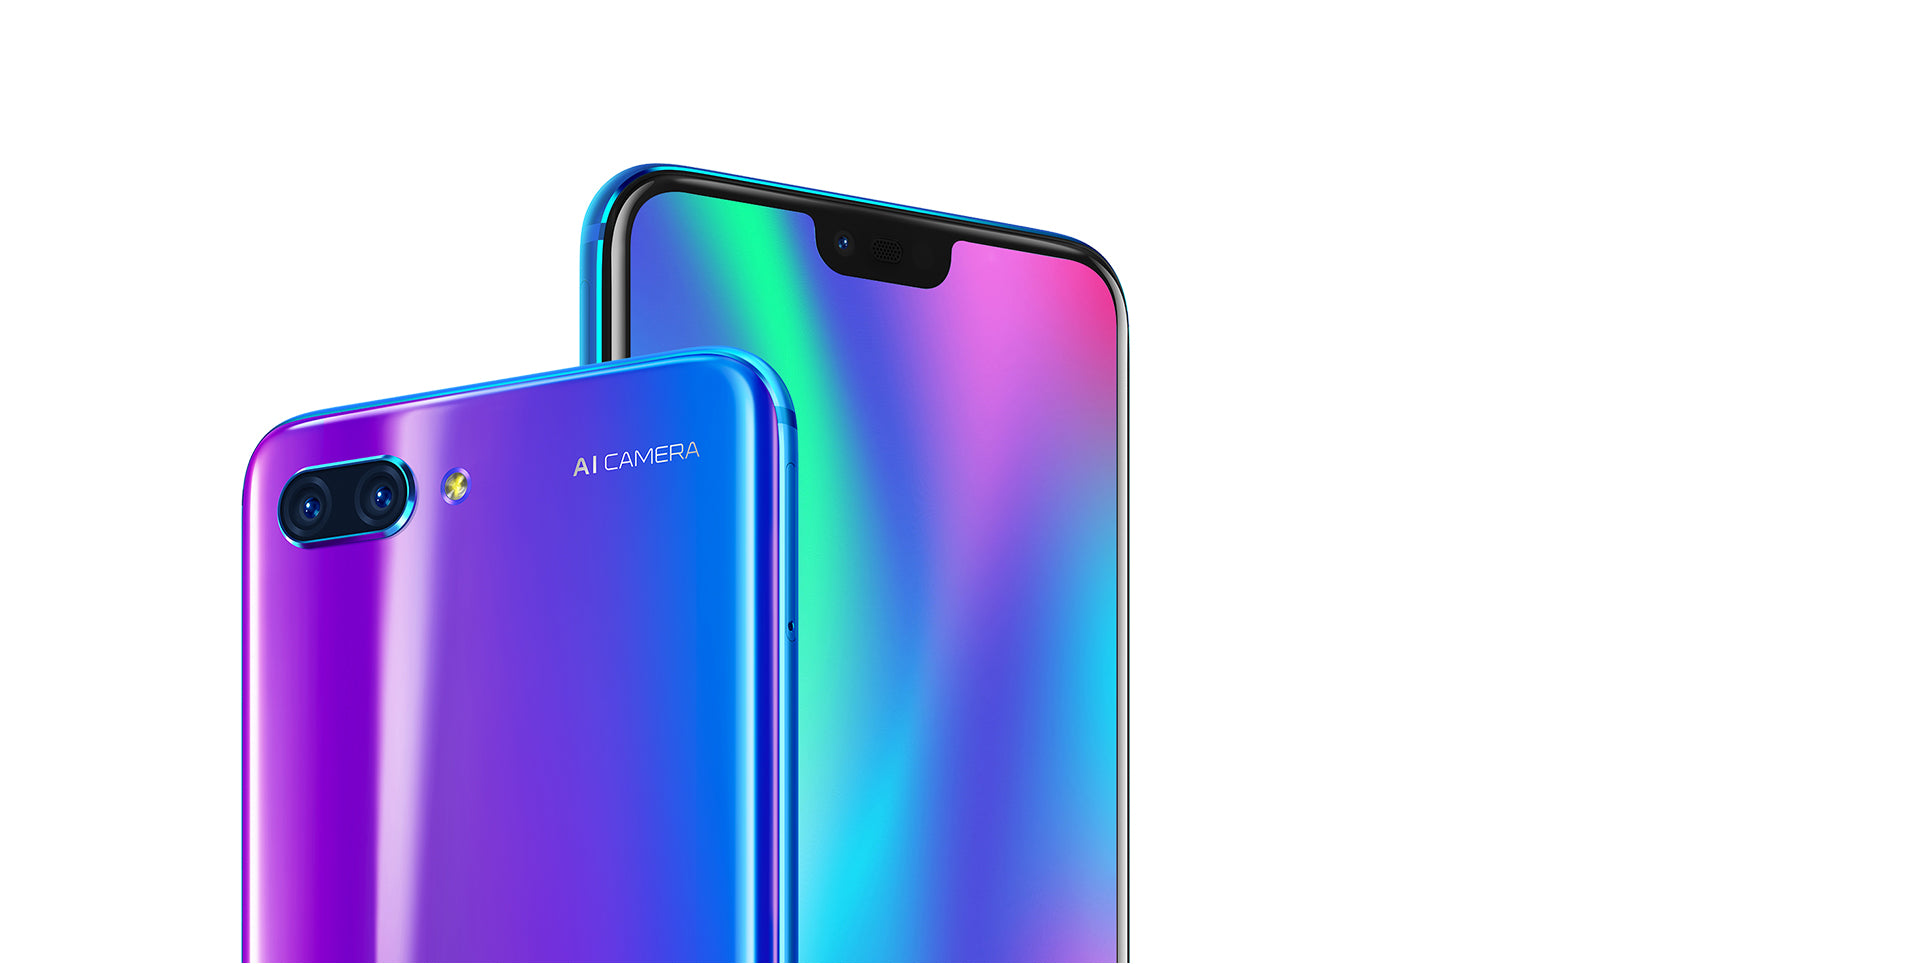 Honor 10 proves budget smartphones don't have to have budget features